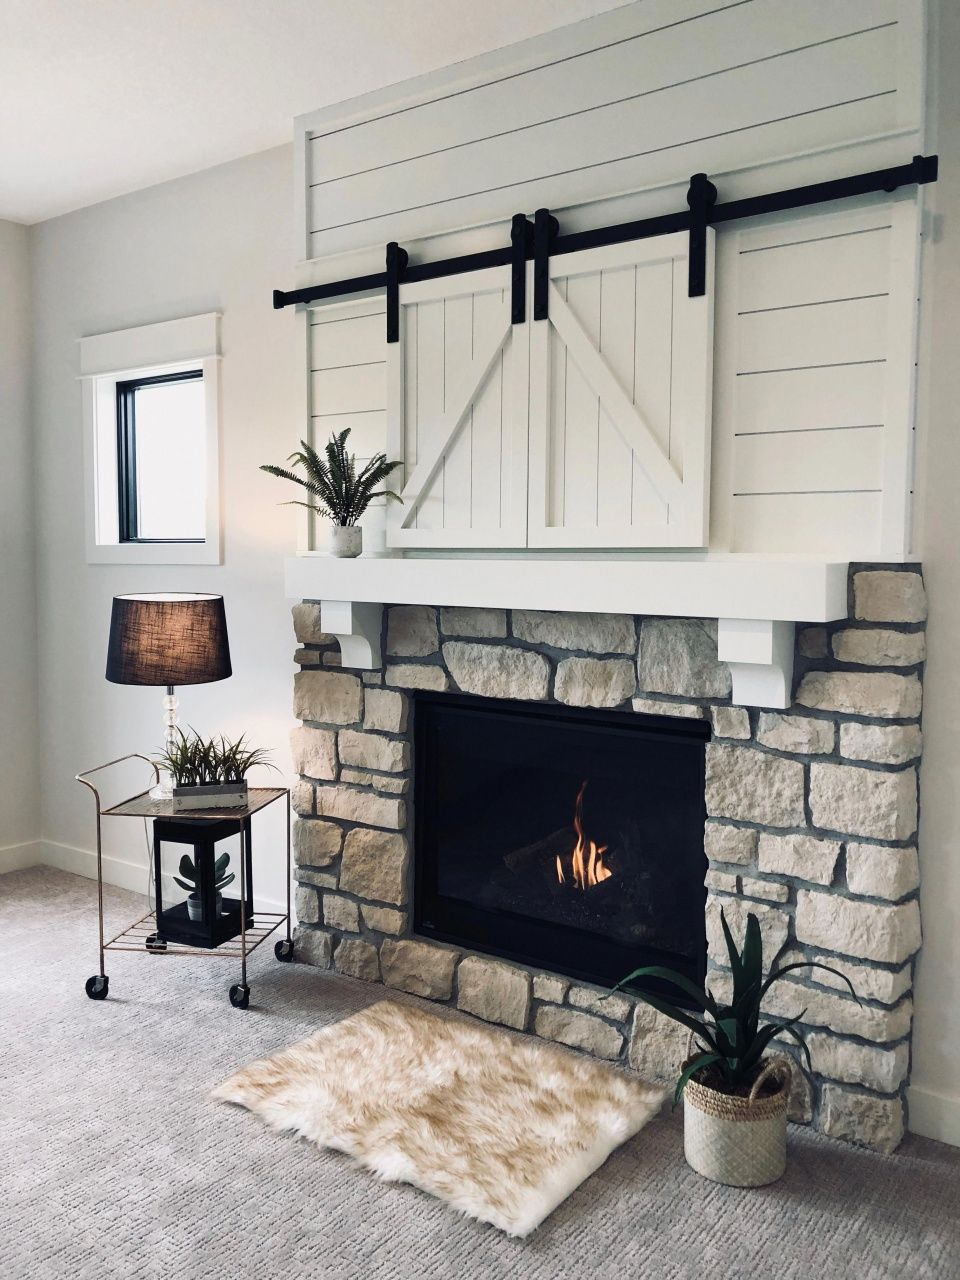 Whitewashed Brick And Shiplap Fireplace With Tv Over Mantle In 2020 White Shiplap Wall Living Room With Fireplace Fireplace Design